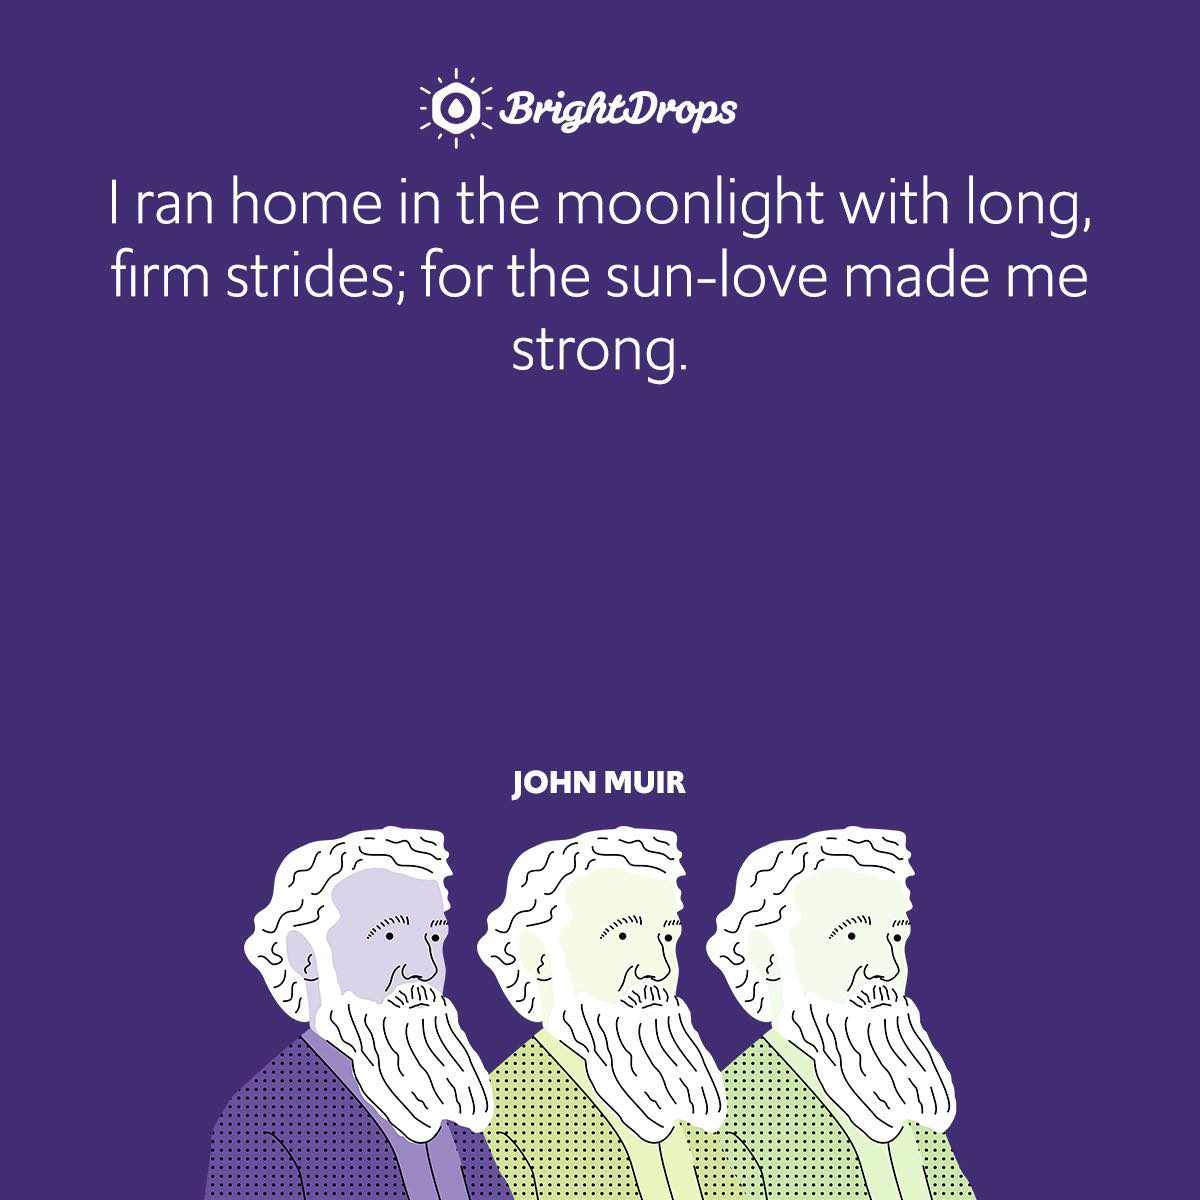 I ran home in the moonlight with long, firm strides; for the sun-love made me strong.